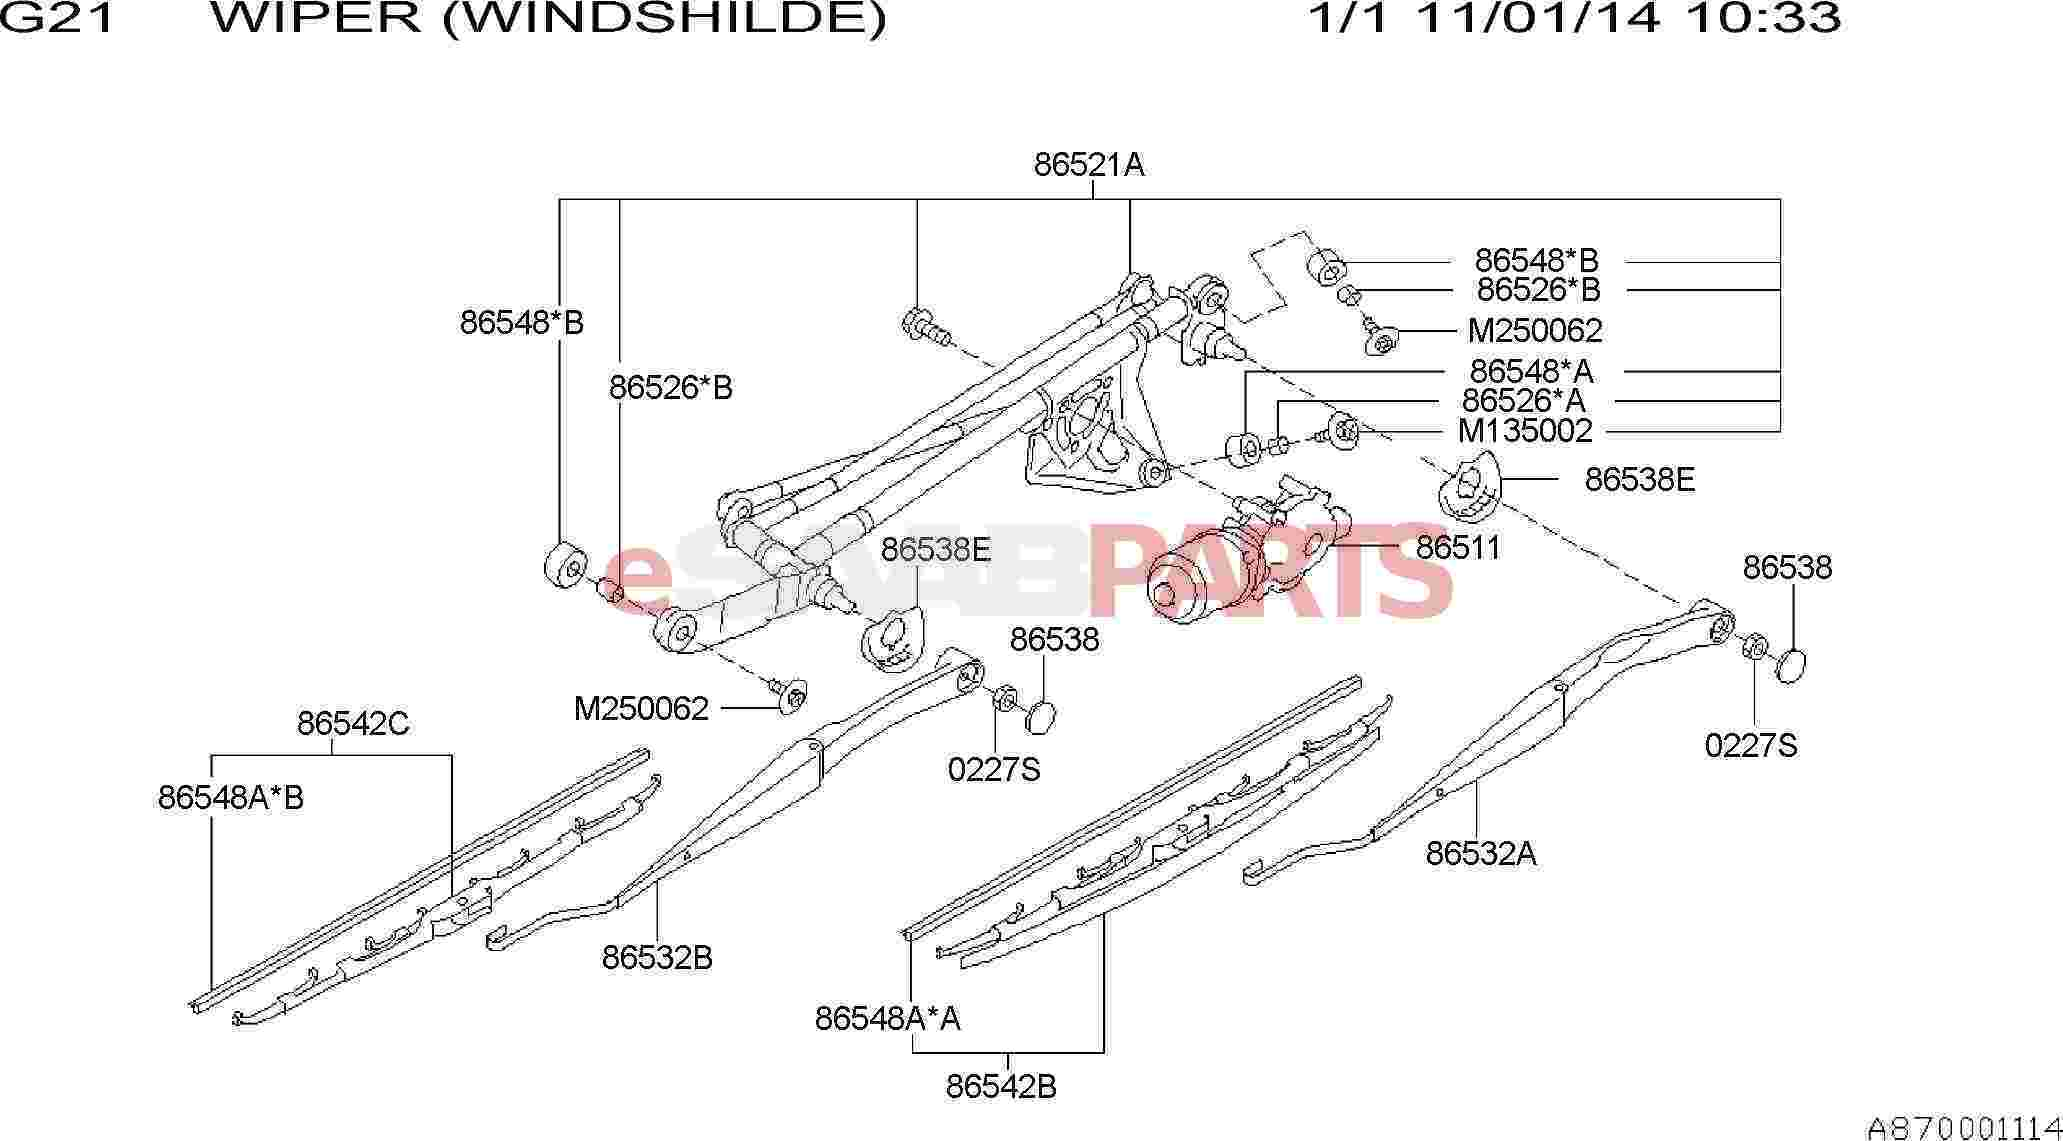 Chevy Heater Hose Diagram also How Do I Get To The Camshaft Position Sensor On Rear Of Engine In 2001 Silv    975728 furthermore 2001 S10 Vacuum Hose Diagram likewise Wiring Diagram For 1994 C1500 likewise 35y8m Need Vacuum Diagram 1994 S10 Blazer 4 3 Cpi Automatic. on 2003 chevy astro van vacuum line diagram